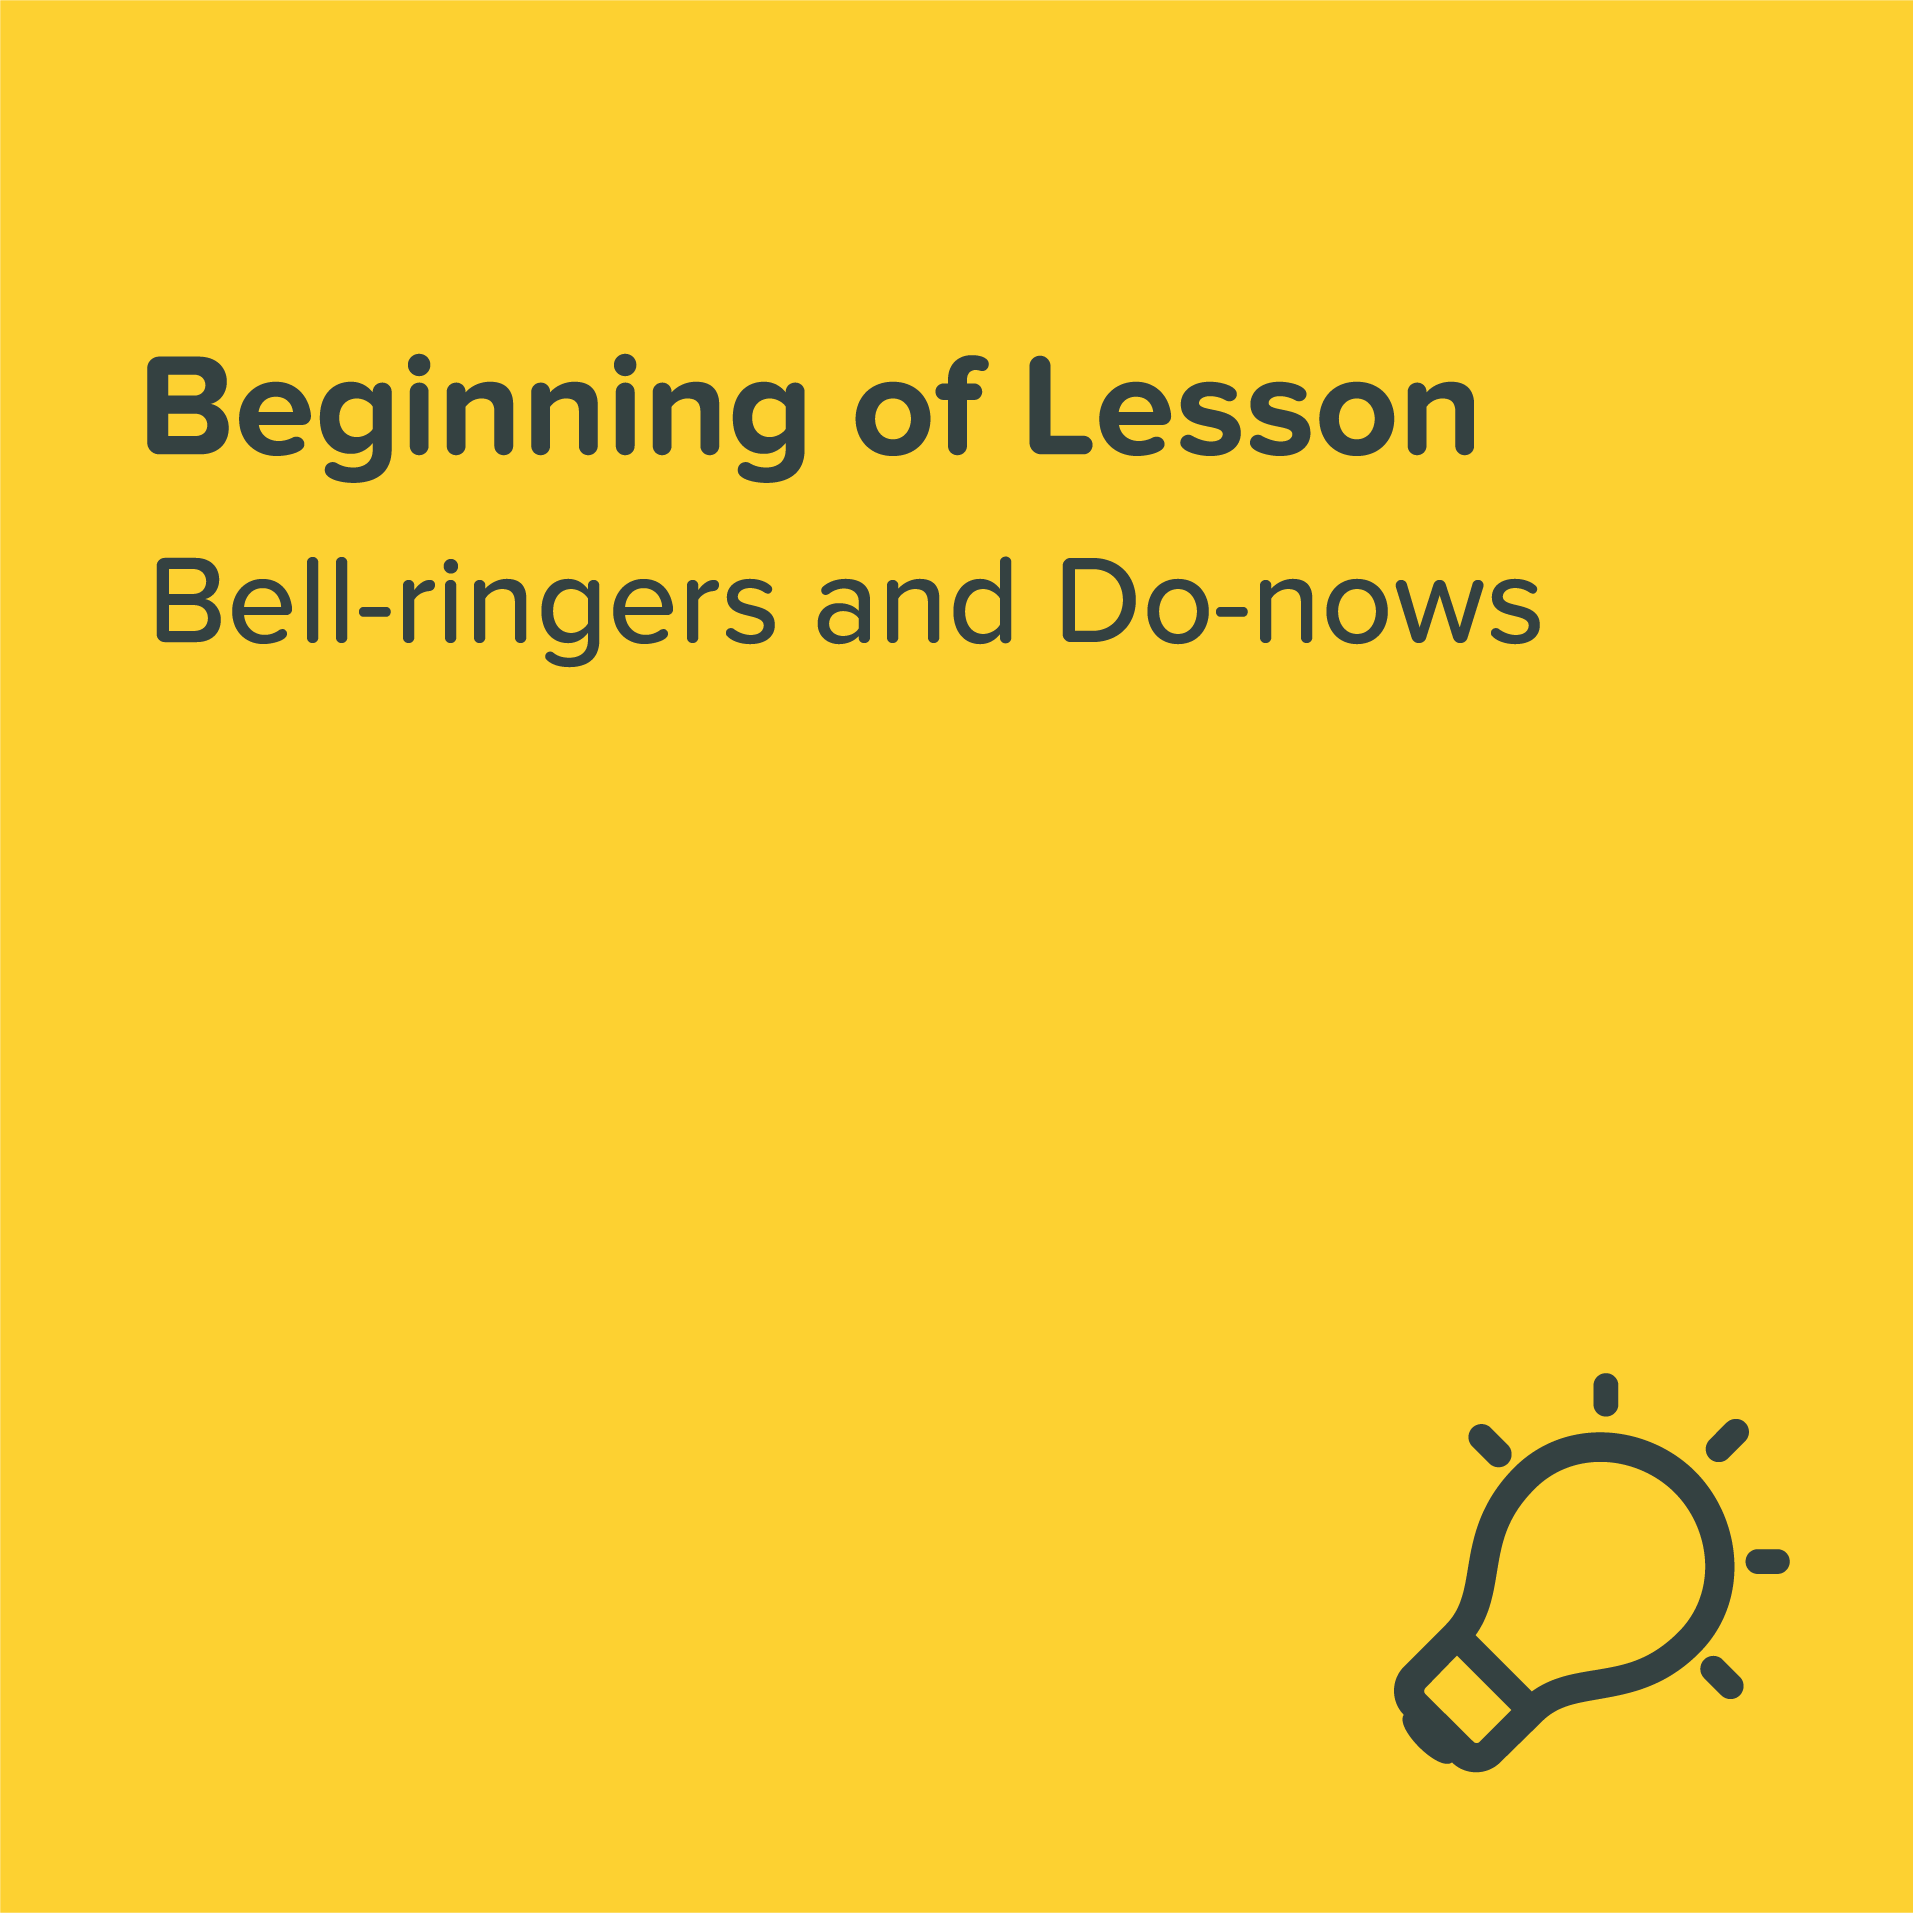 Beginning of Lesson   From warm-ups to bell ringers, templates in this set help get students actively thinking about the day's lesson.    View & Download >